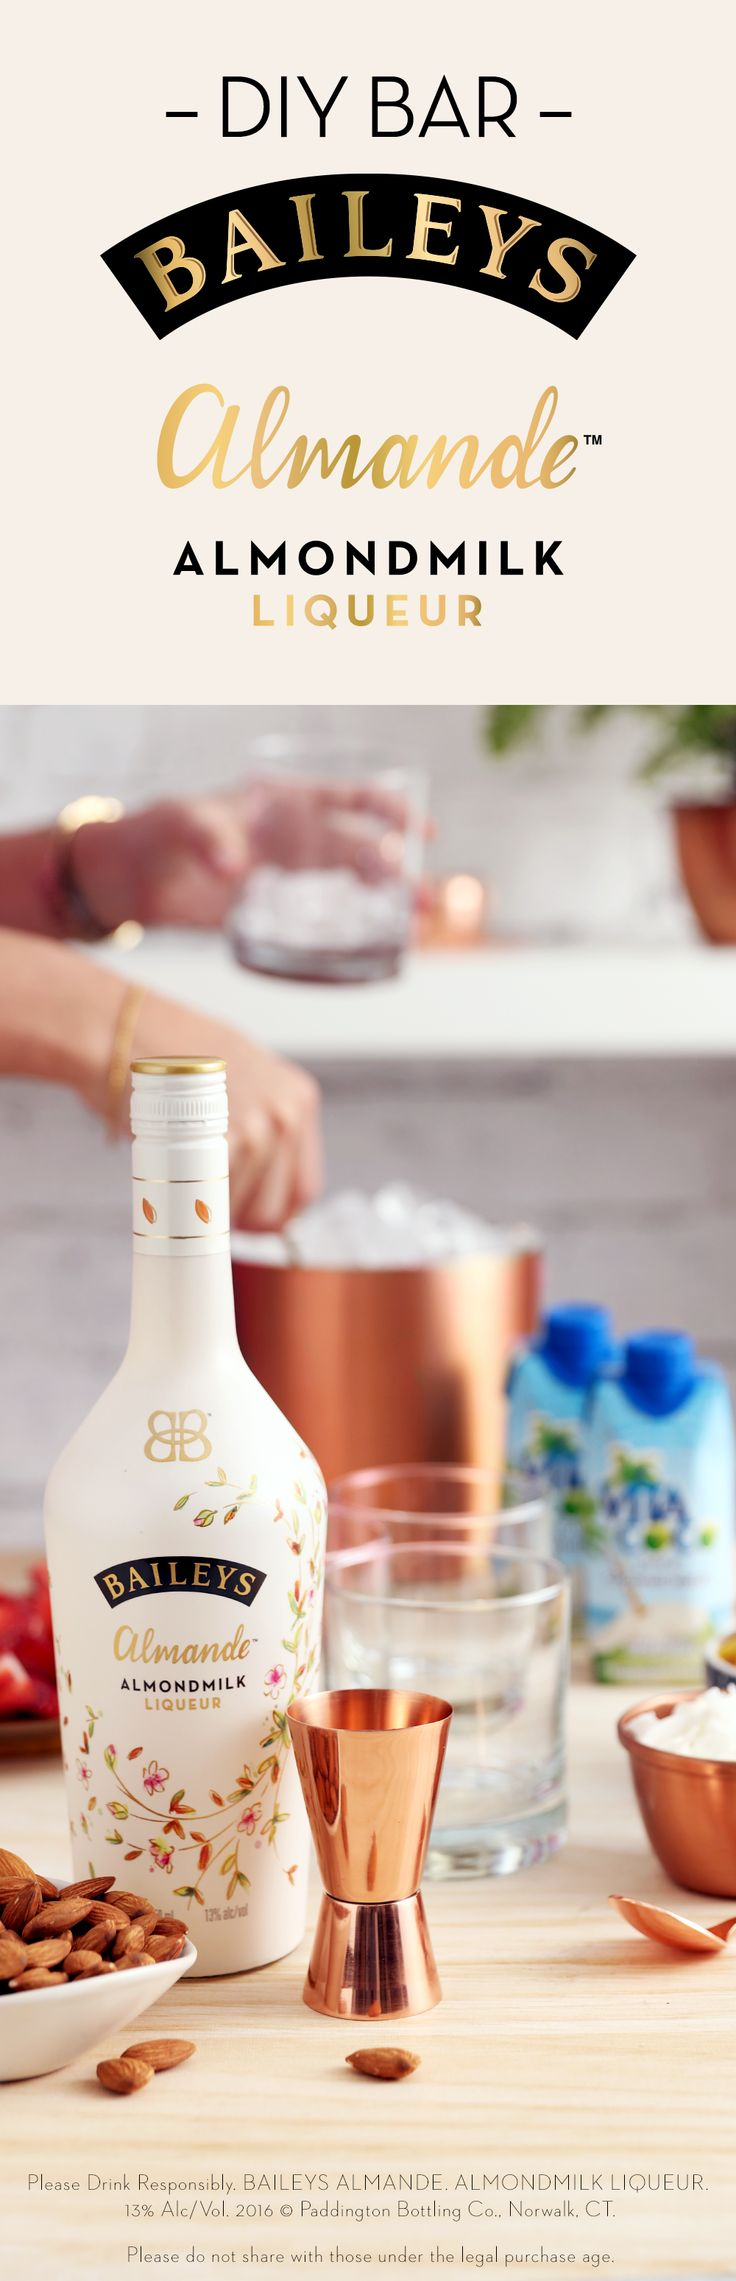 Hosting a summer party or brunch? New Baileys Almande™ is a deliciously light tasting, dairy-free and gluten-free almondmilk liqueur that's perfect for mixing fresh cocktails. Include Vita Coco Coconut Water and different fruit options so your guests will fall in love with the drinks at your DIY at-home bar!